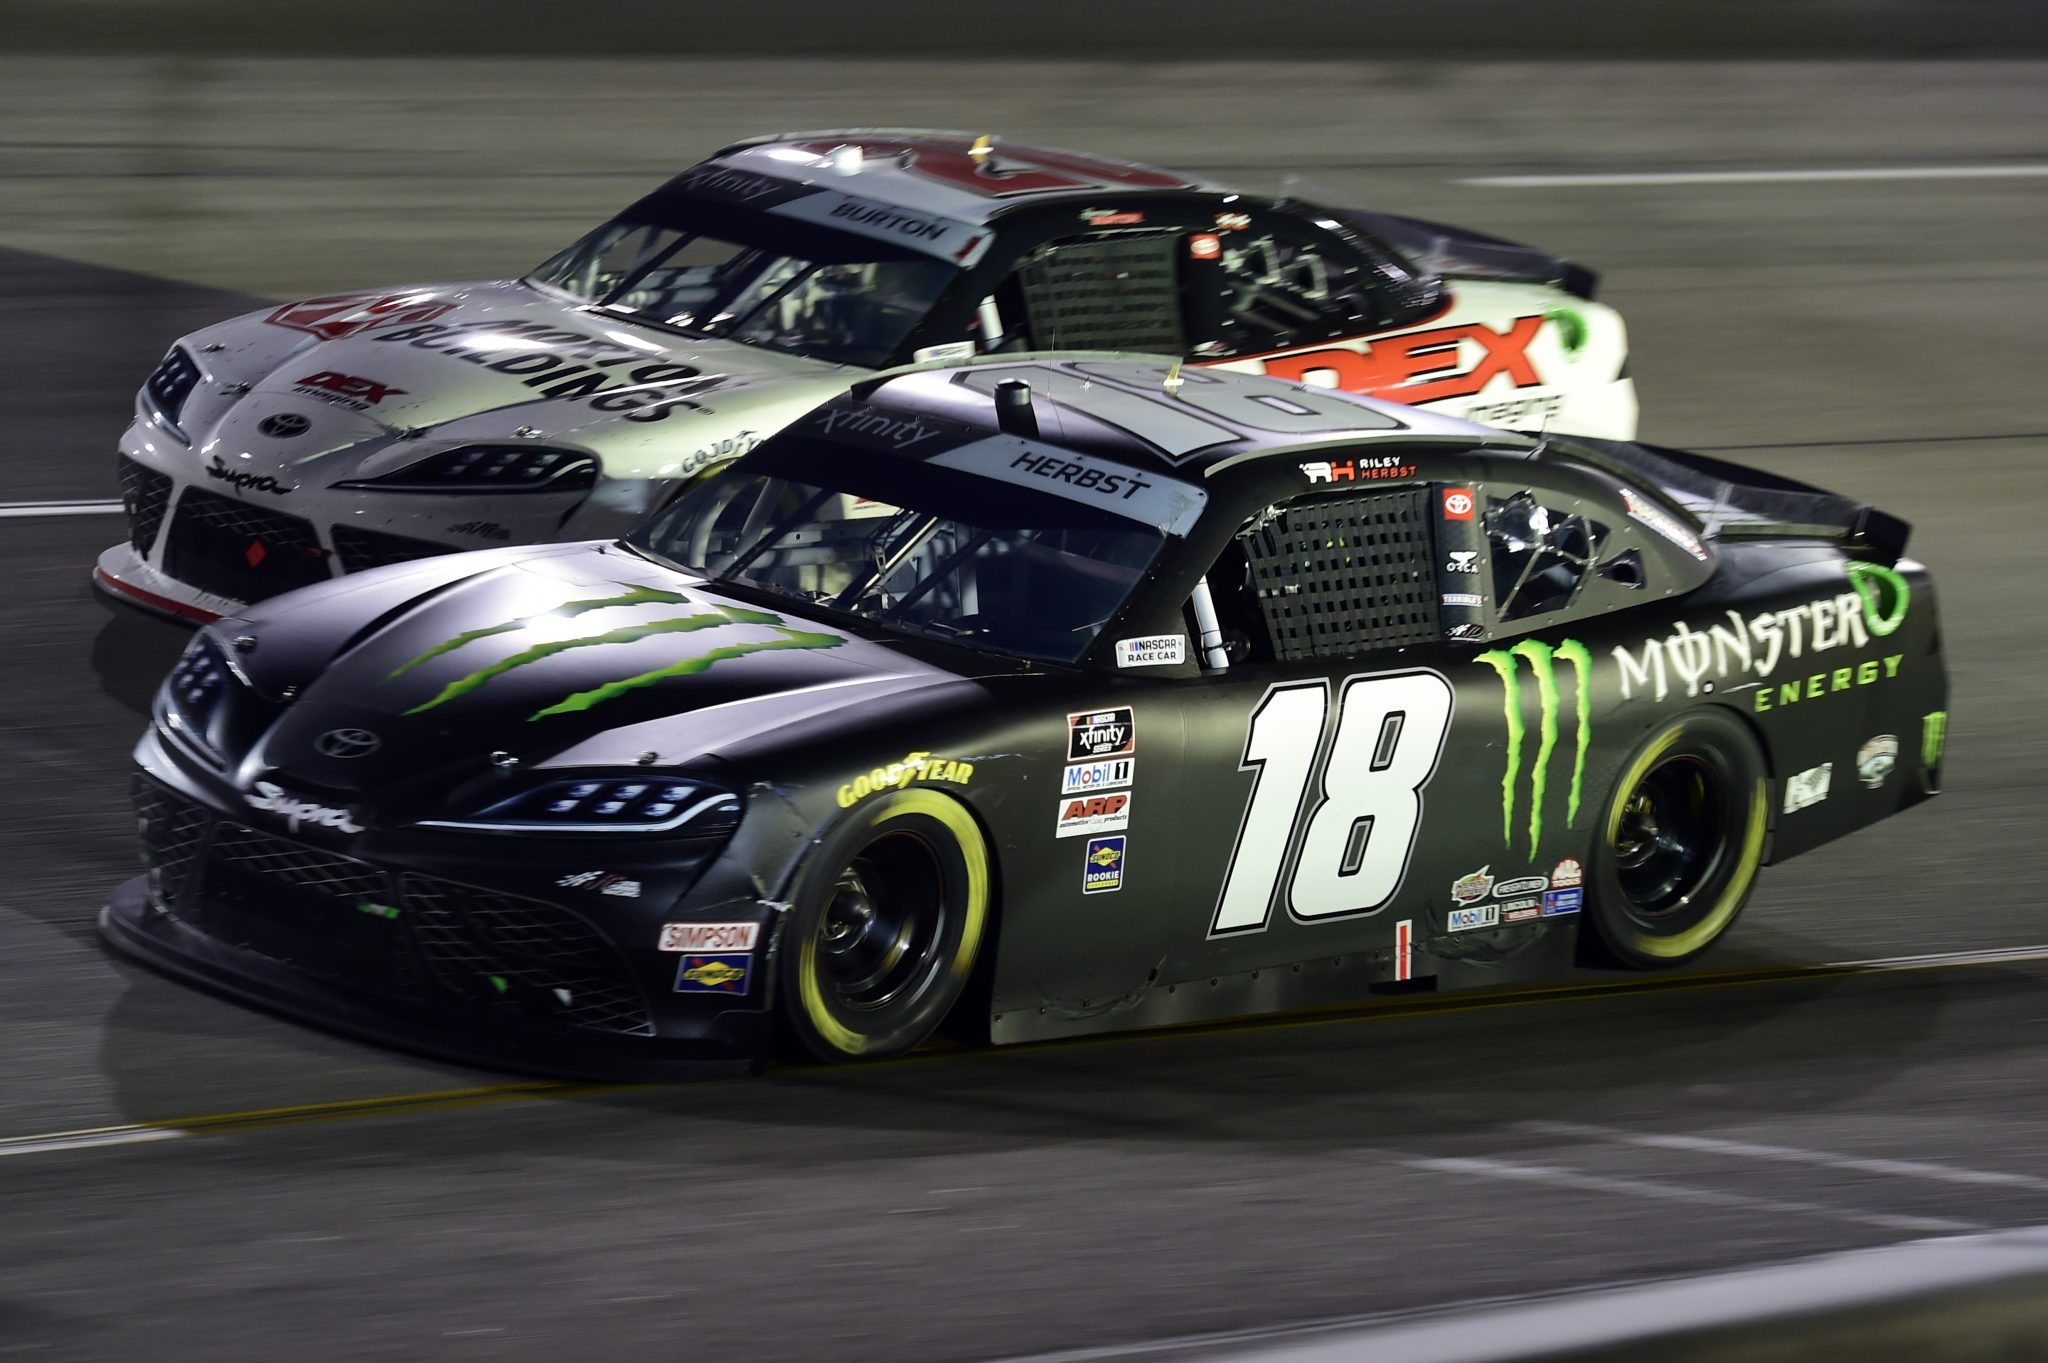 RICHMOND, VIRGINIA - SEPTEMBER 11: Riley Herbst, driver of the #18 Monster Energy Toyota, and Harrison Burton, driver of the #20 DEX Imaging Toyota, race during the NASCAR Xfinity Series Go Bowling 250 at Richmond Raceway on September 11, 2020 in Richmond, Virginia. (Photo by Jared C. Tilton/Getty Images) | Getty Images